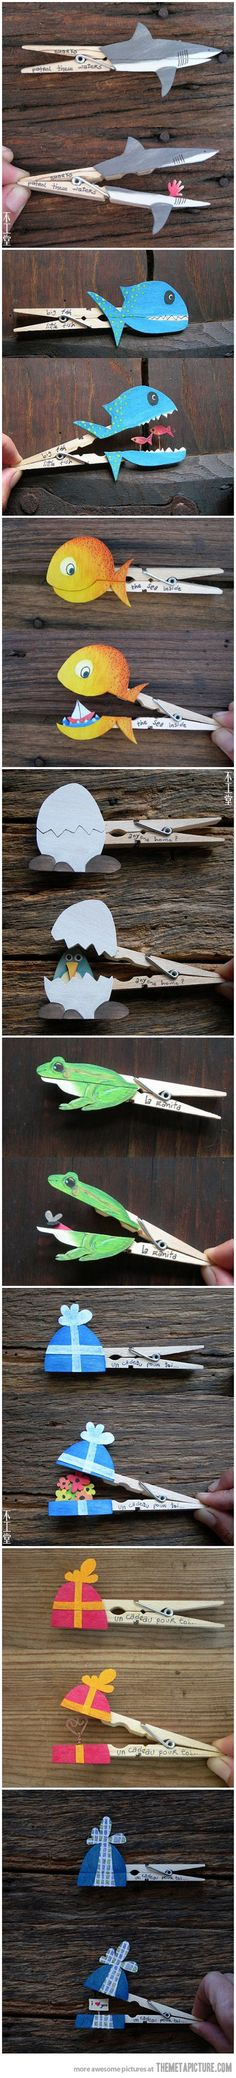 Fun With Clothespins…Jonah and the Whale craft idea